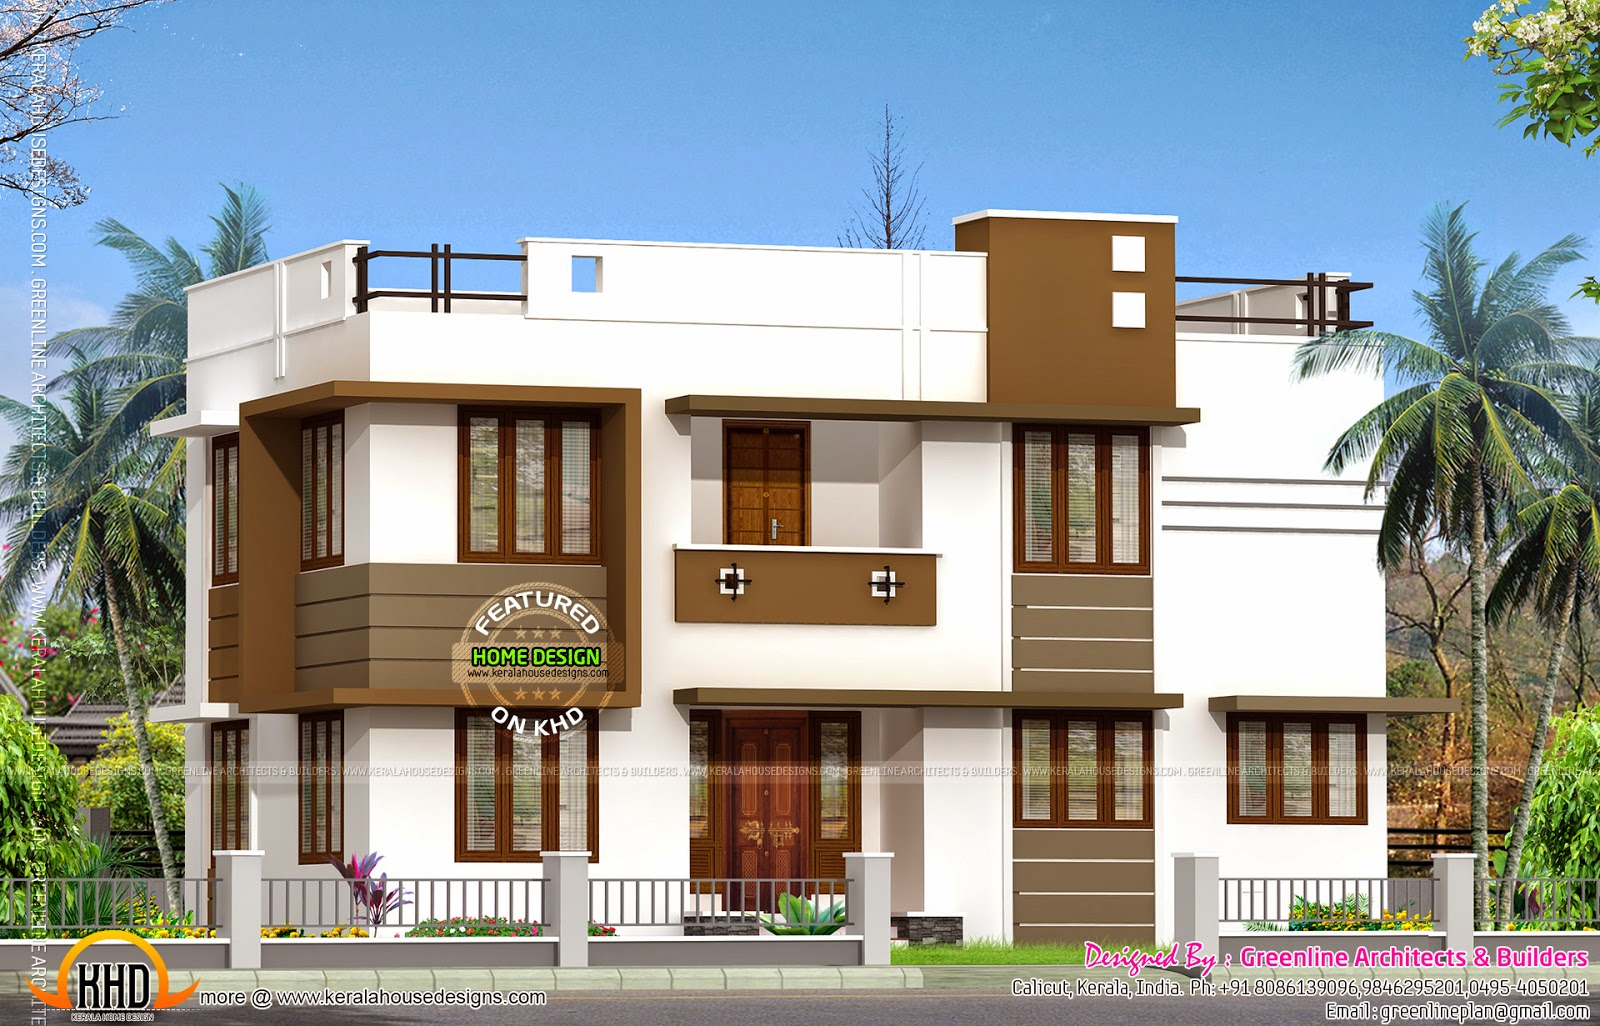 Low budget double storied house kerala home design and Low budget house plans